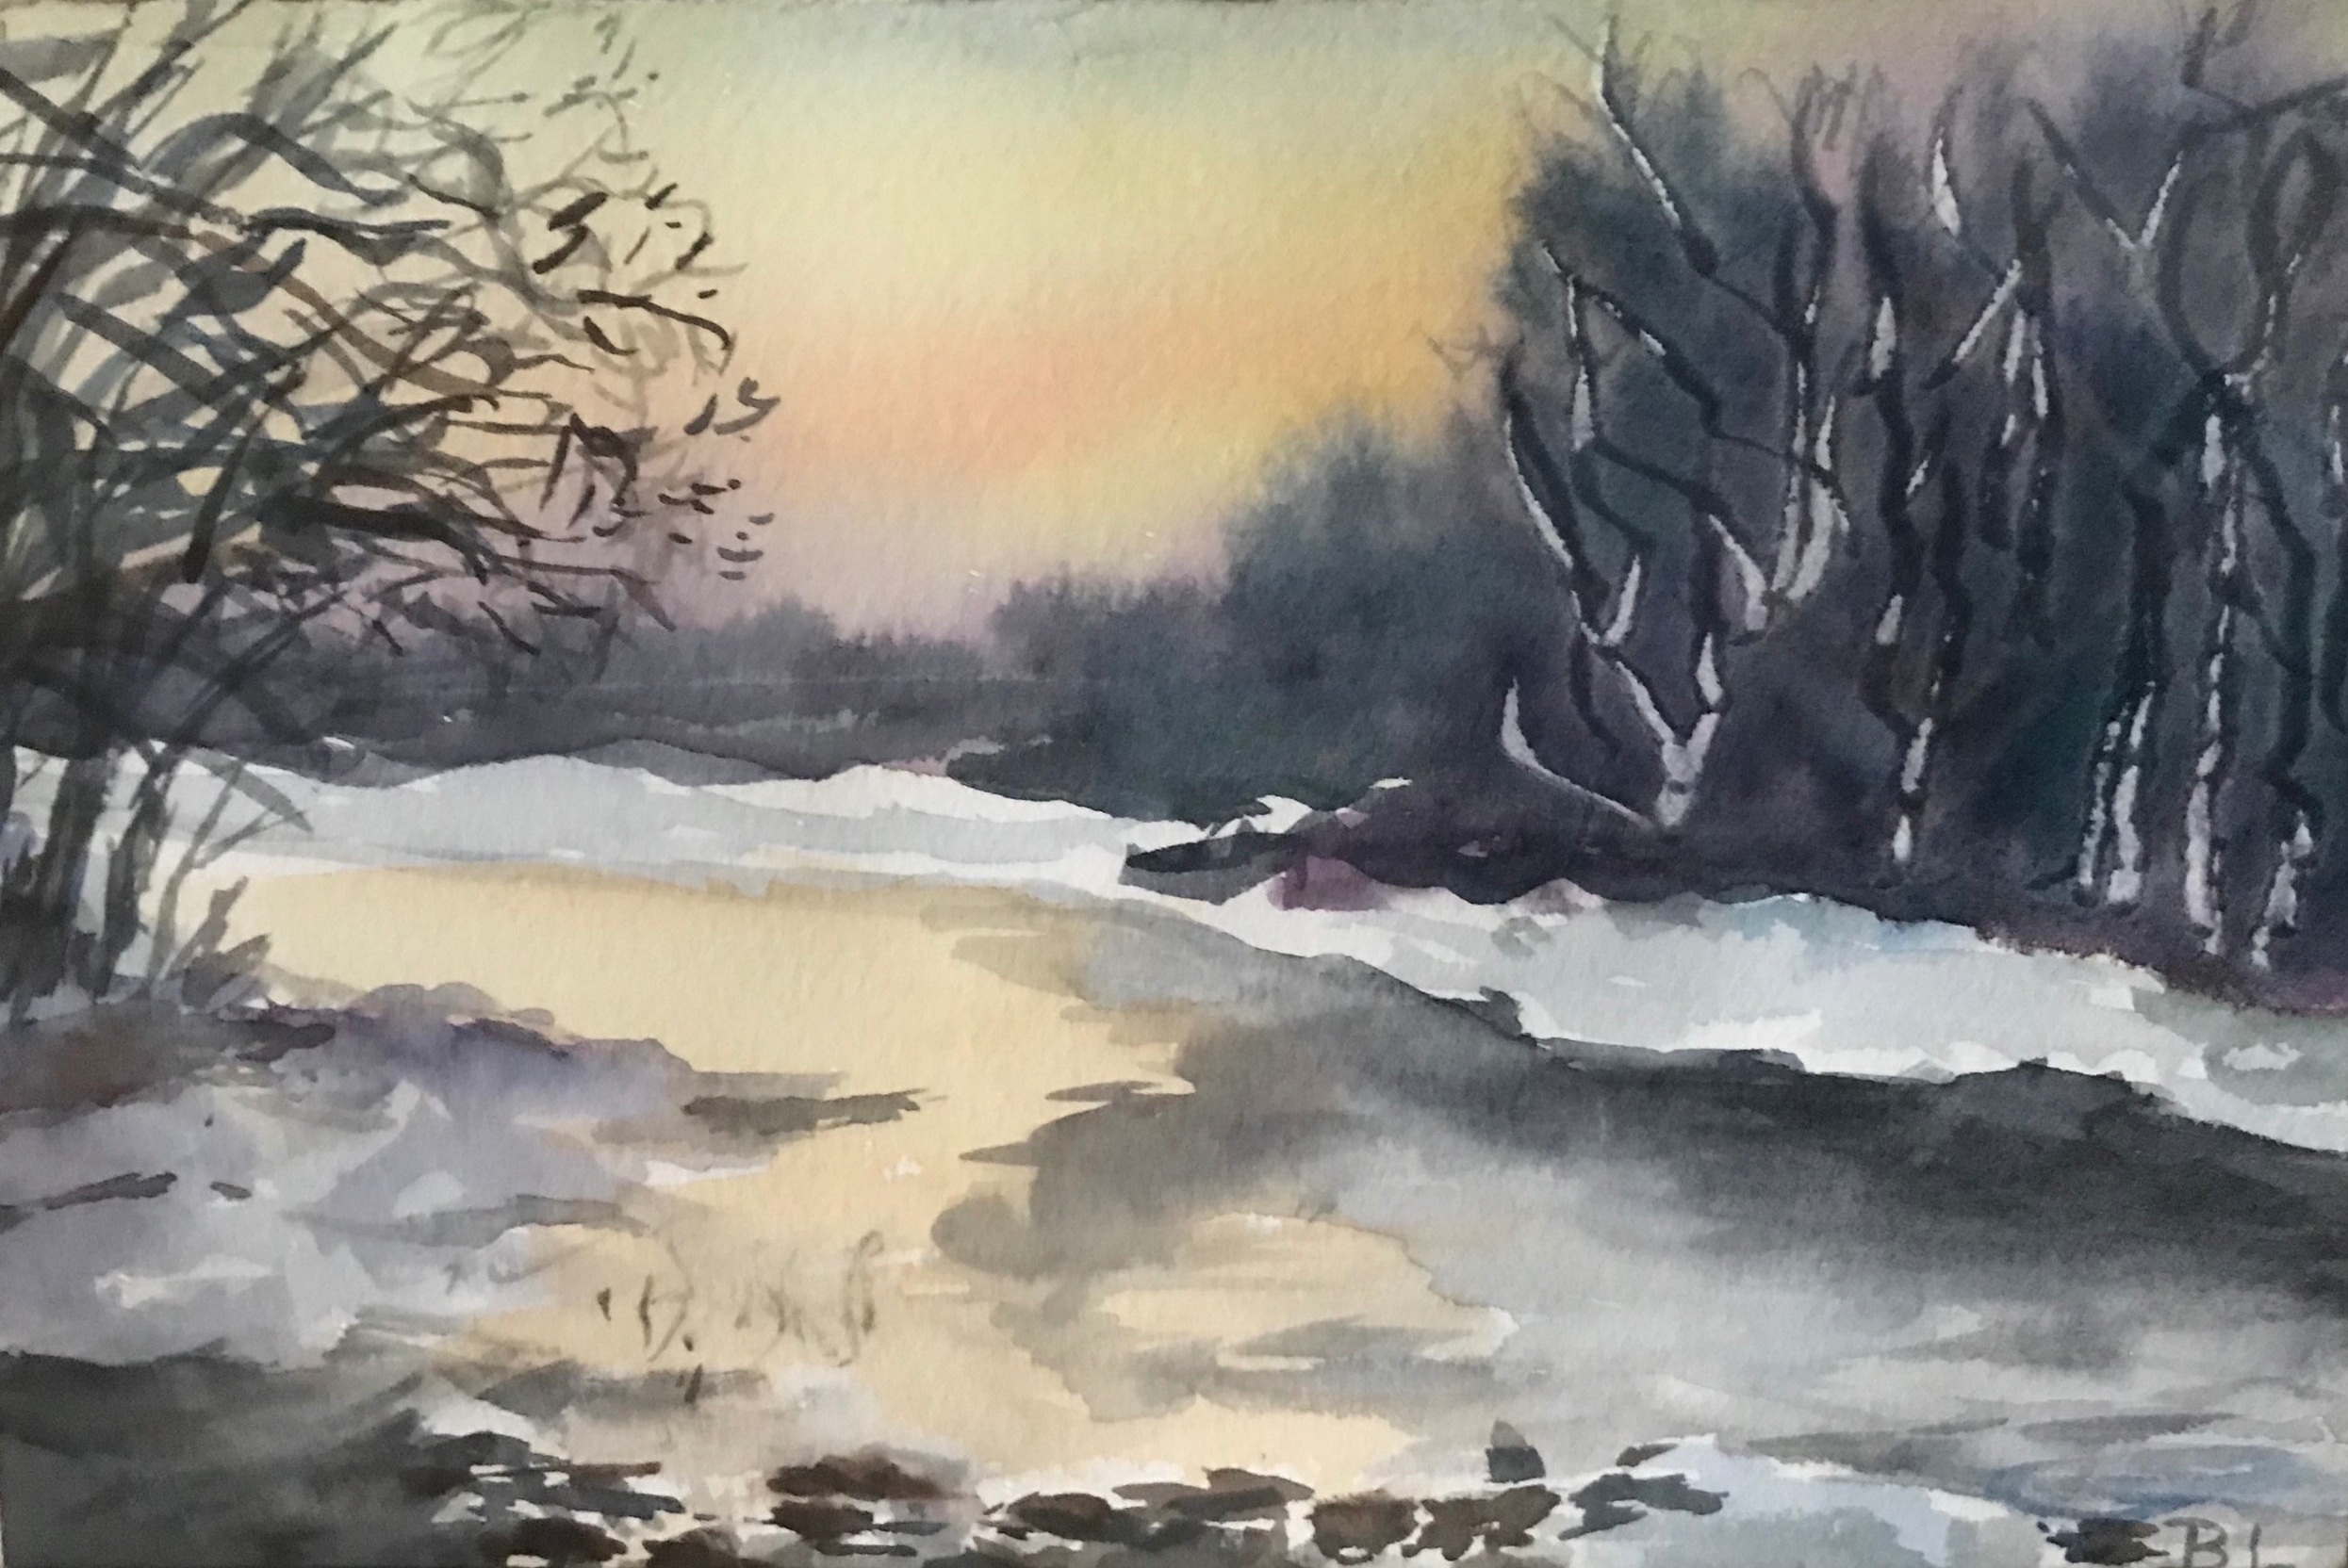 Betsy+Lewis++Watercolor+%2522Bartlett+Road%2C+WInter%2522+6+x+9%2522+%24225+.jpg